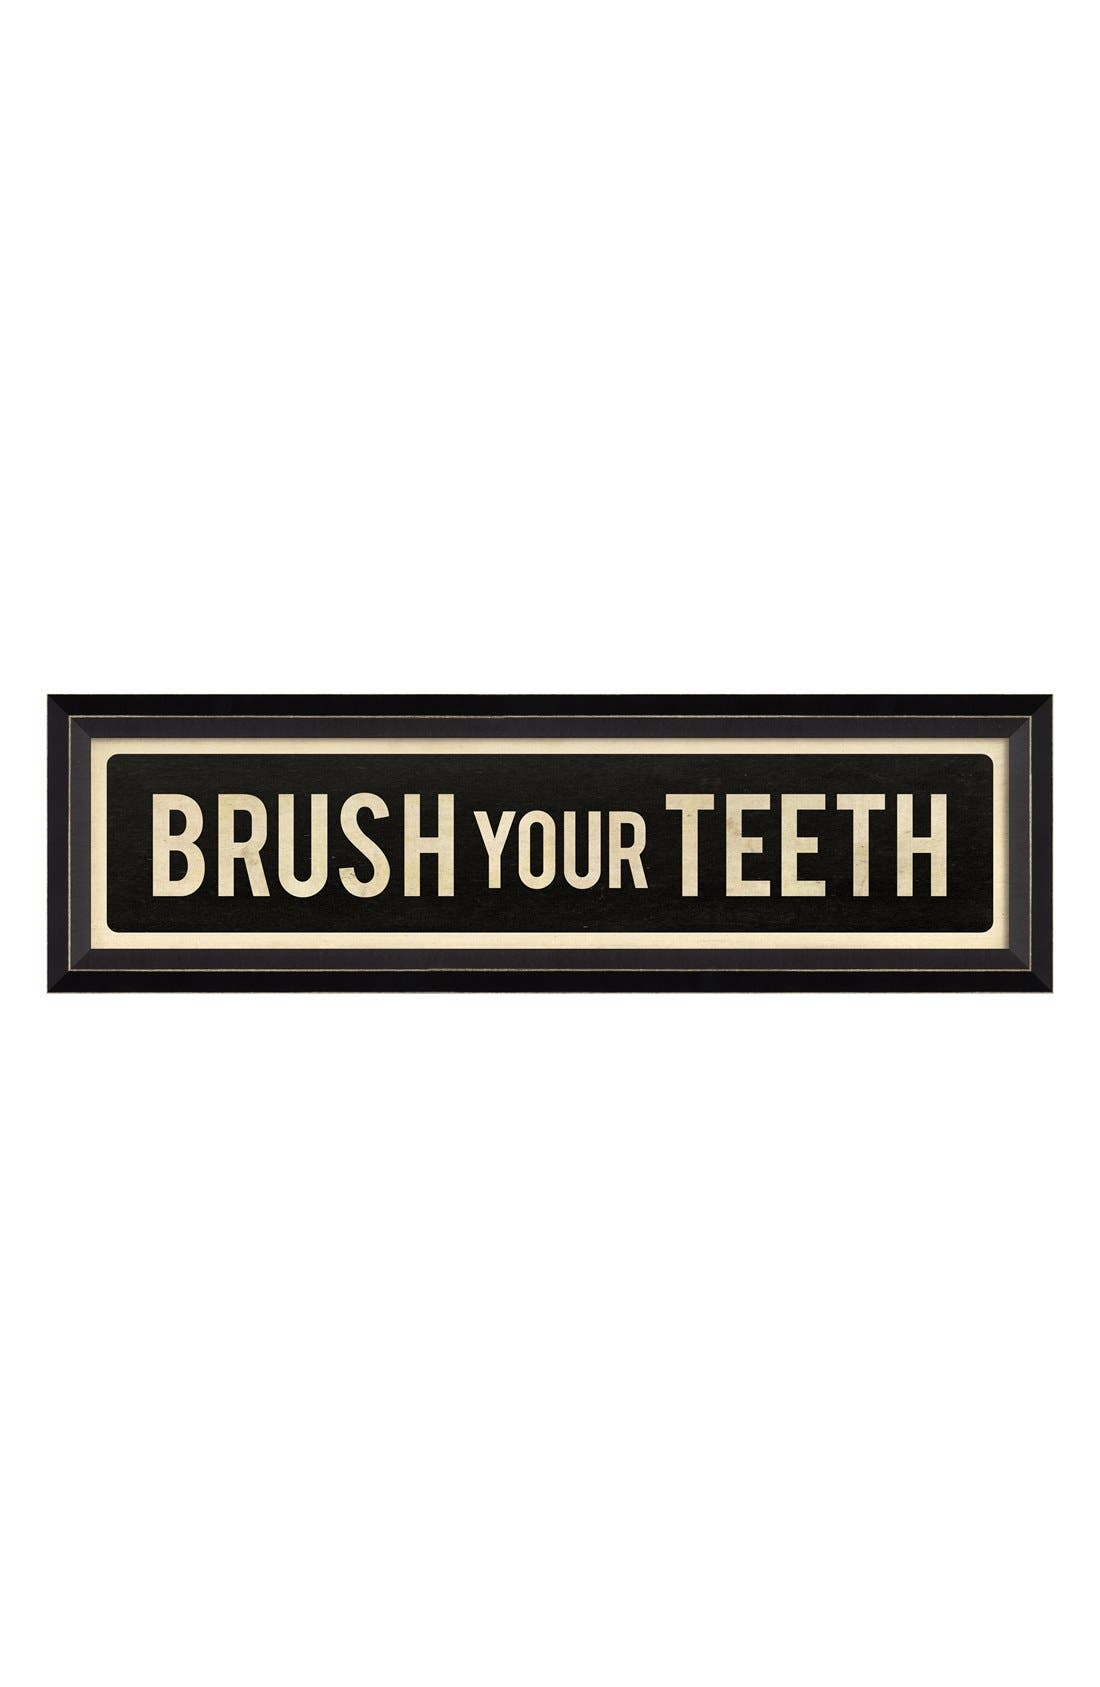 Main Image - Spicher and Company 'Brush Your Teeth' Vintage Look Sign Artwork